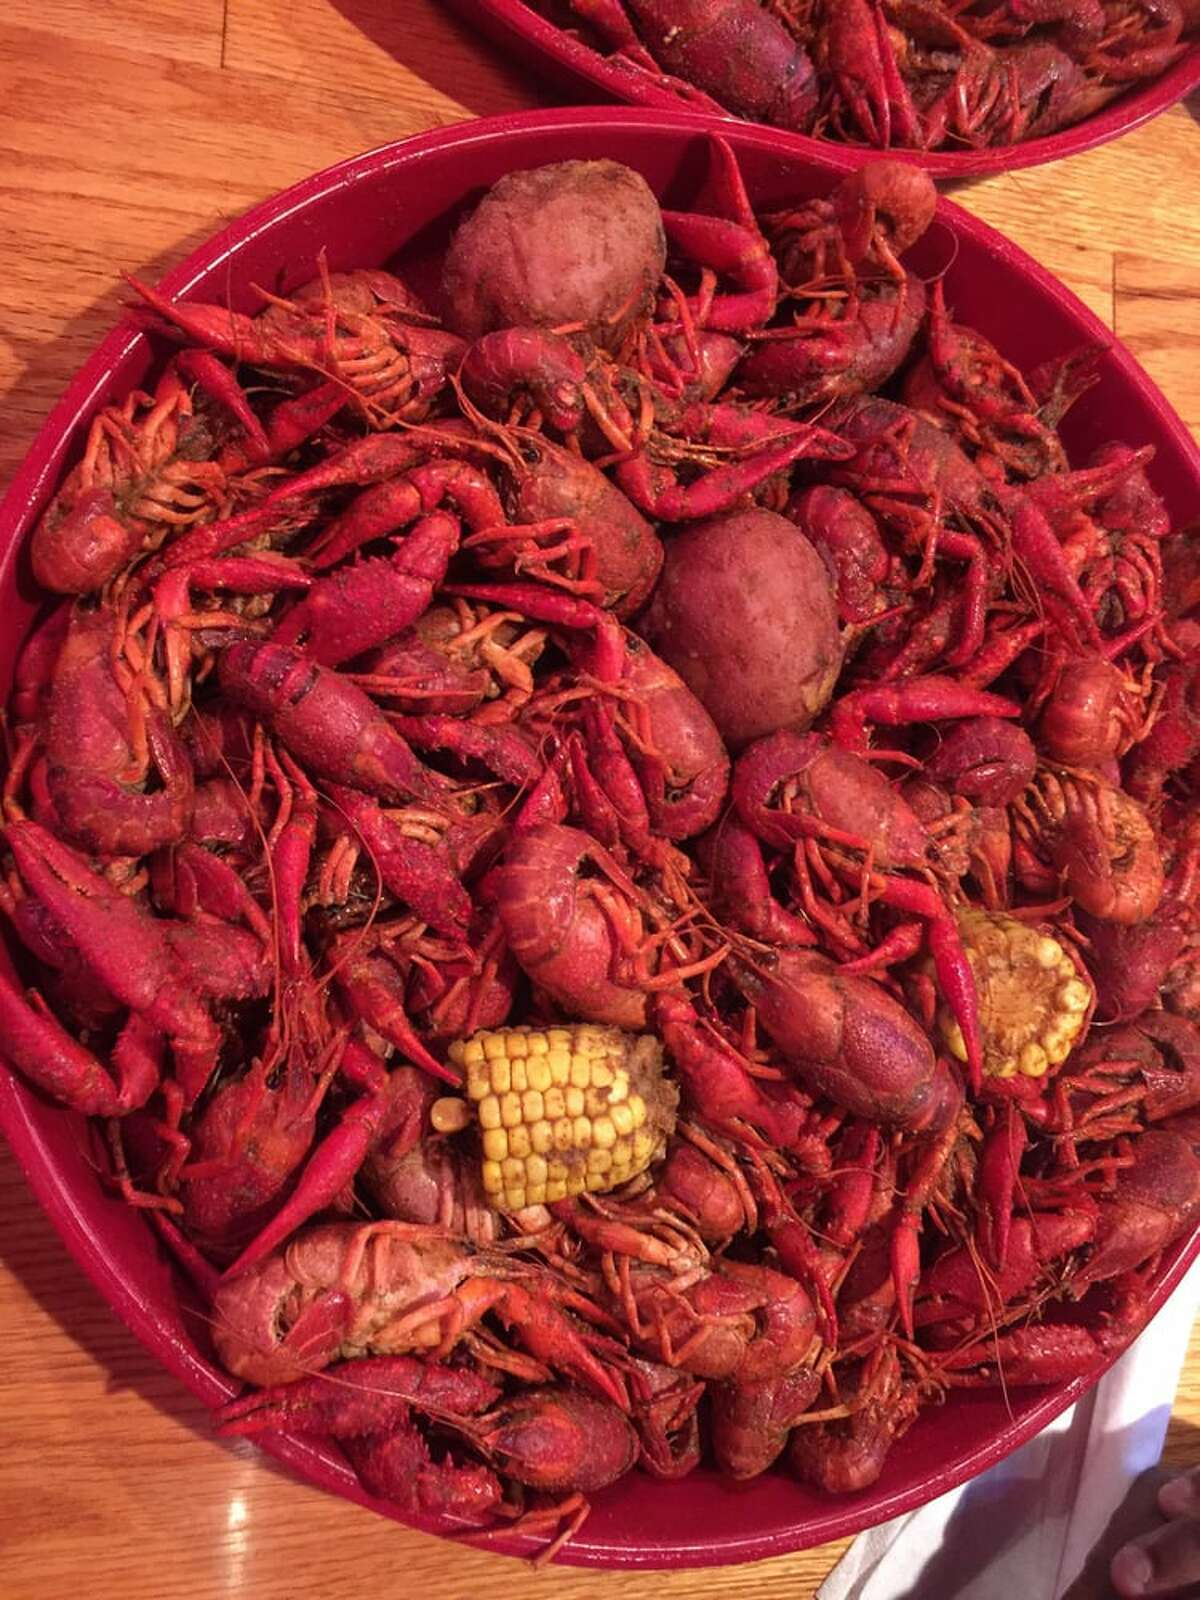 Floyd's Cajun Seafood and Texas Steakhouse 2290 Interstate 10 S, Beaumont. When: All day.